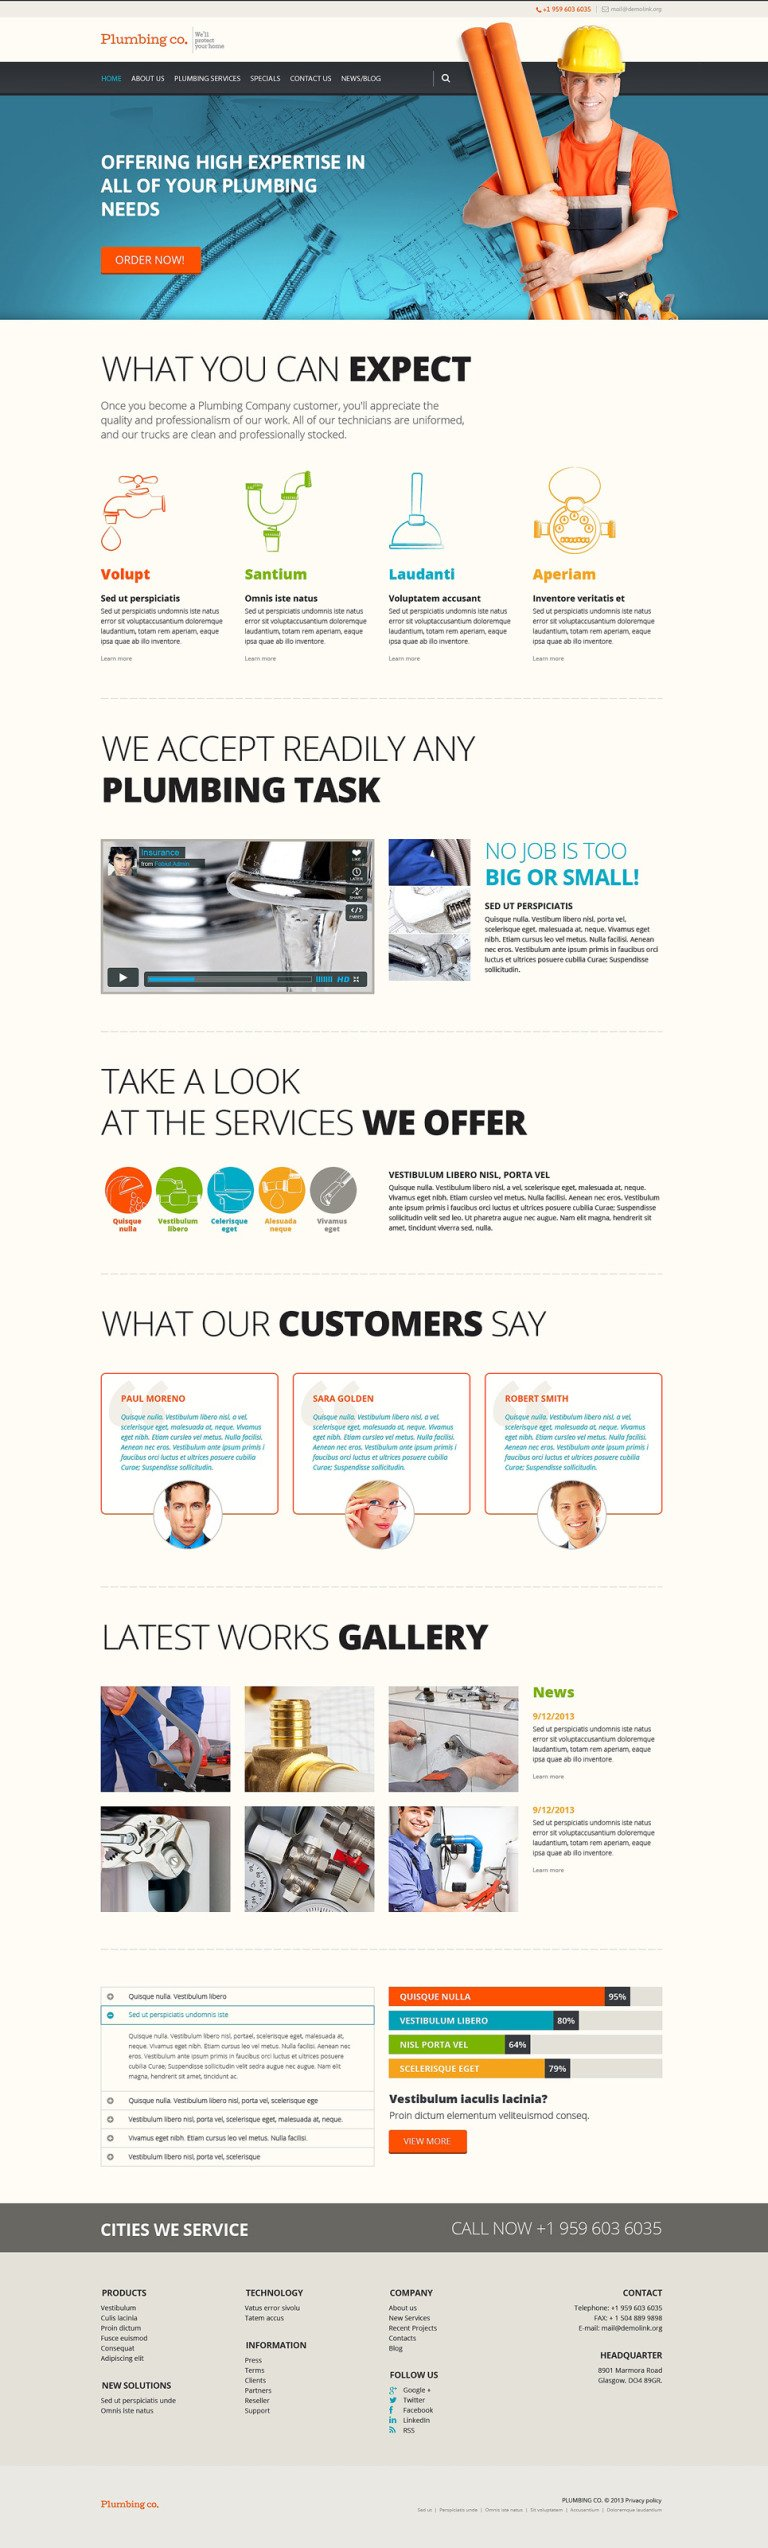 Plumbing Services WordPress Theme New Screenshots BIG